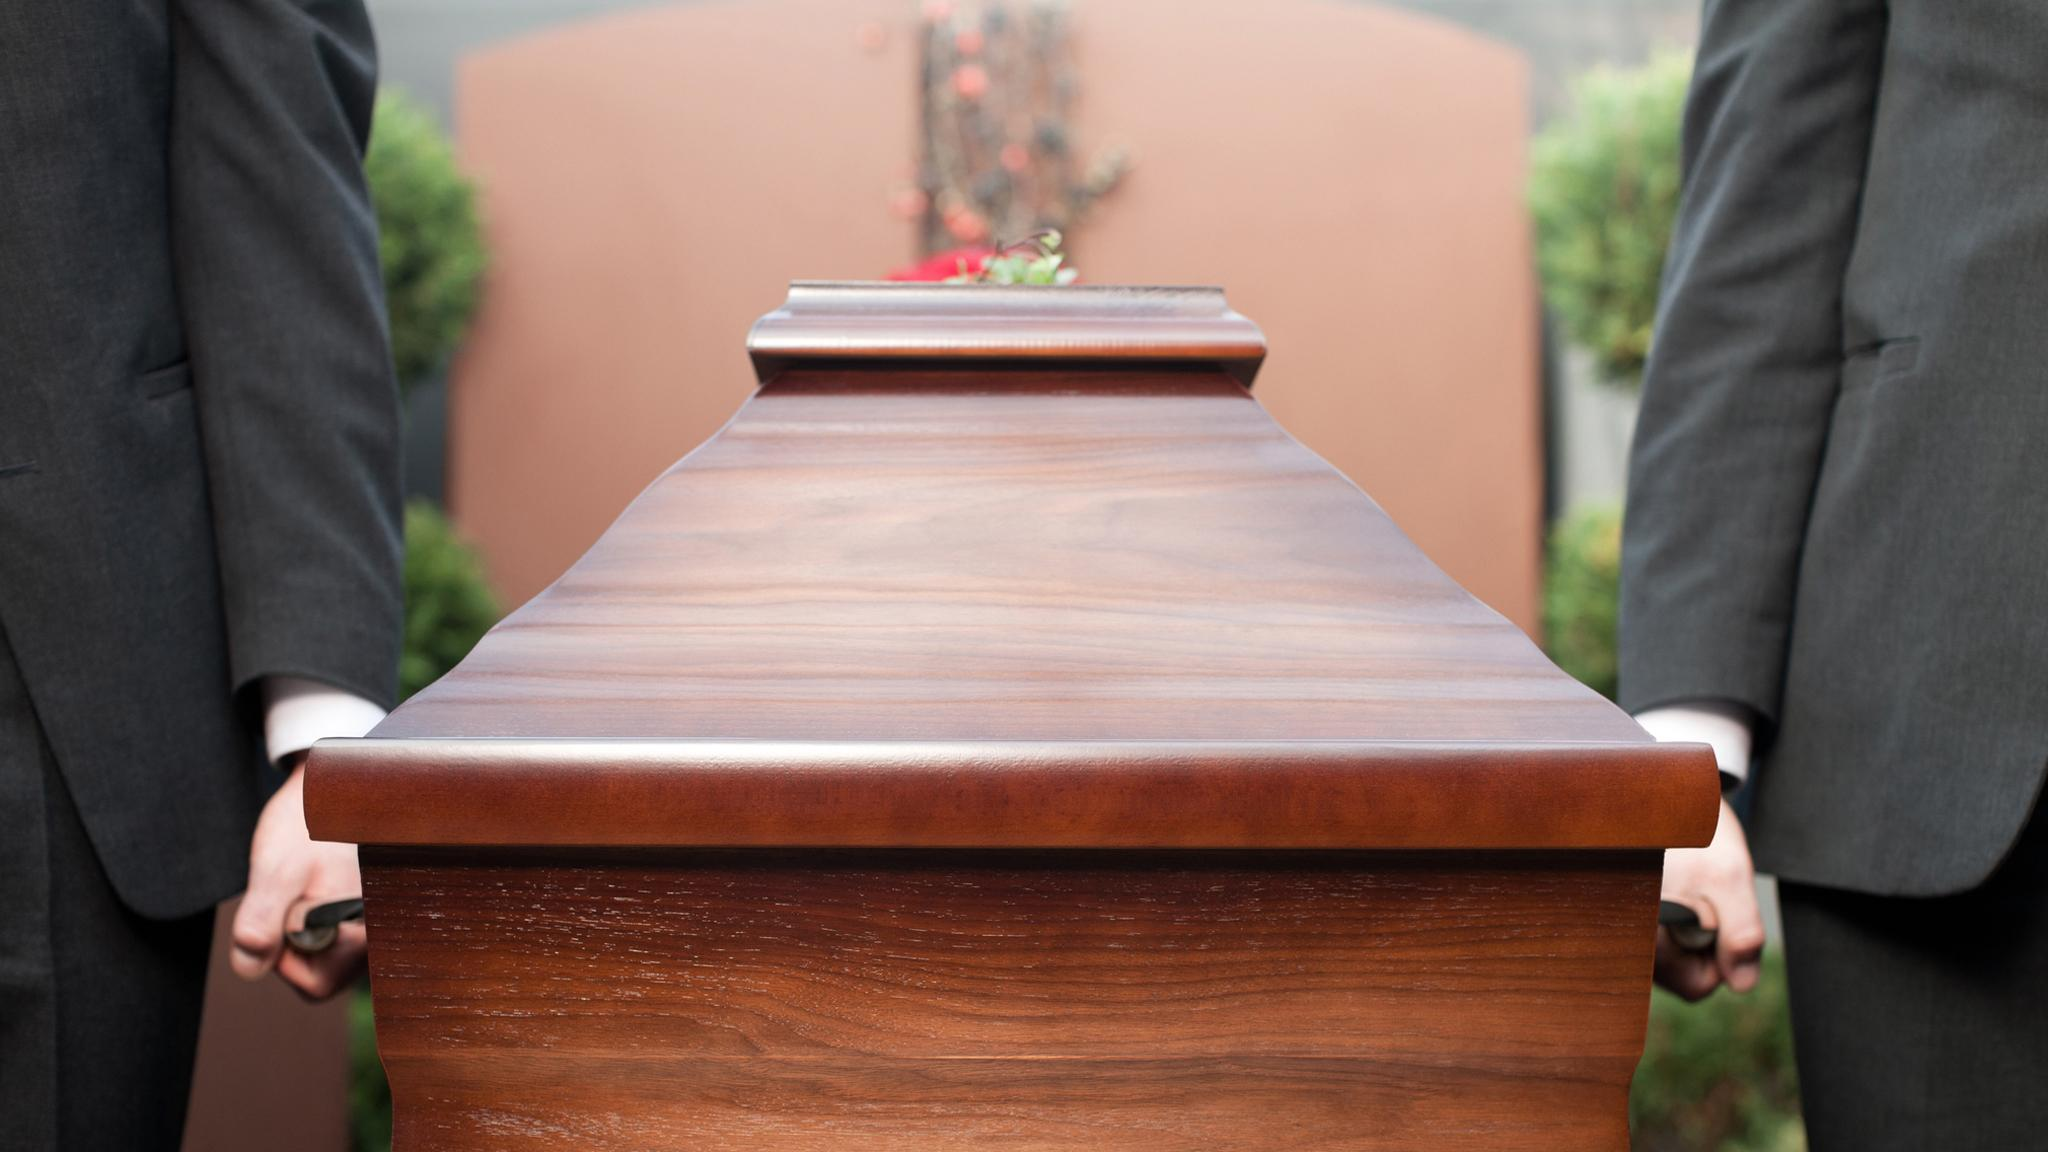 The Silver Economy: Technology to bring funerals into modern age